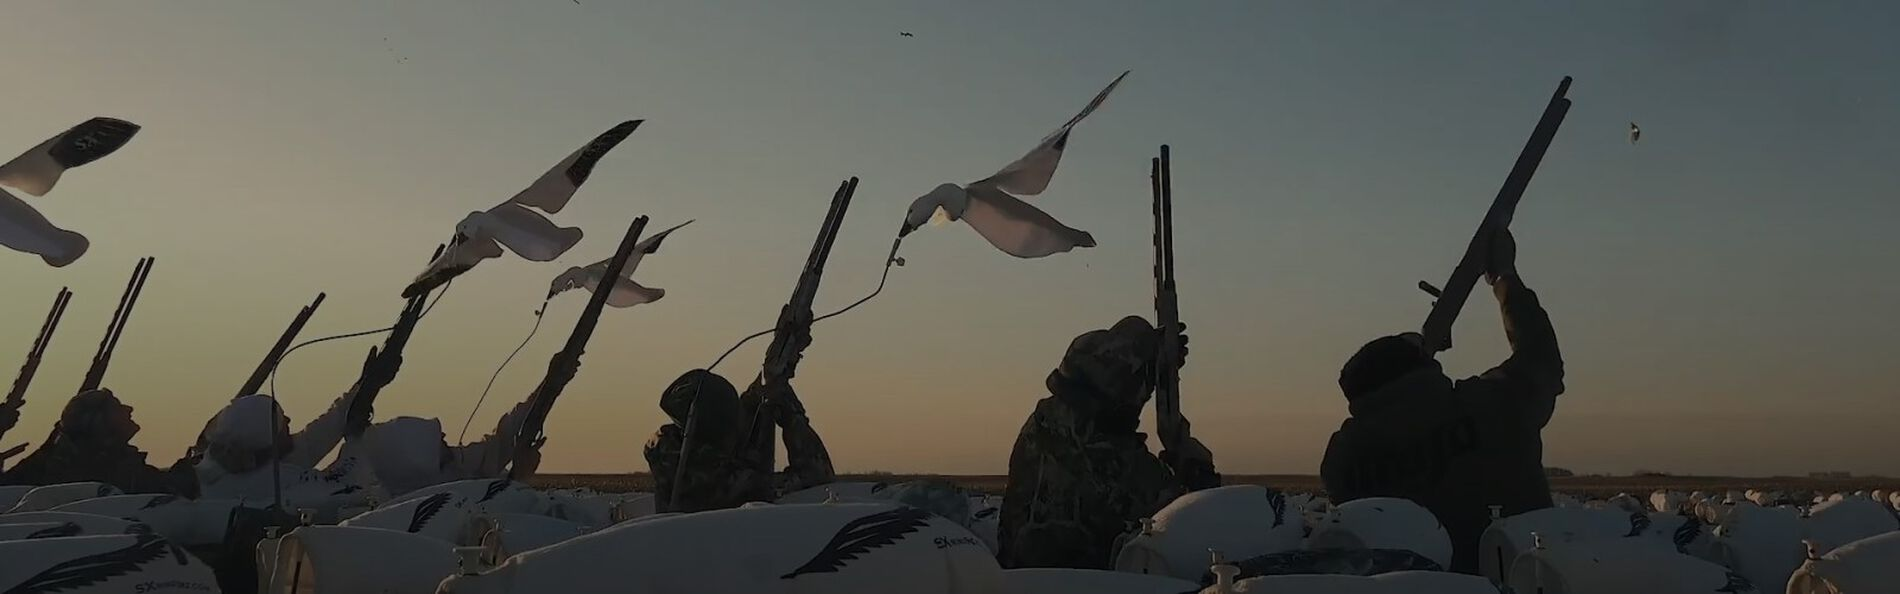 hunters sitting amoungst snow goose decoys with those shotguns pointed to the sky